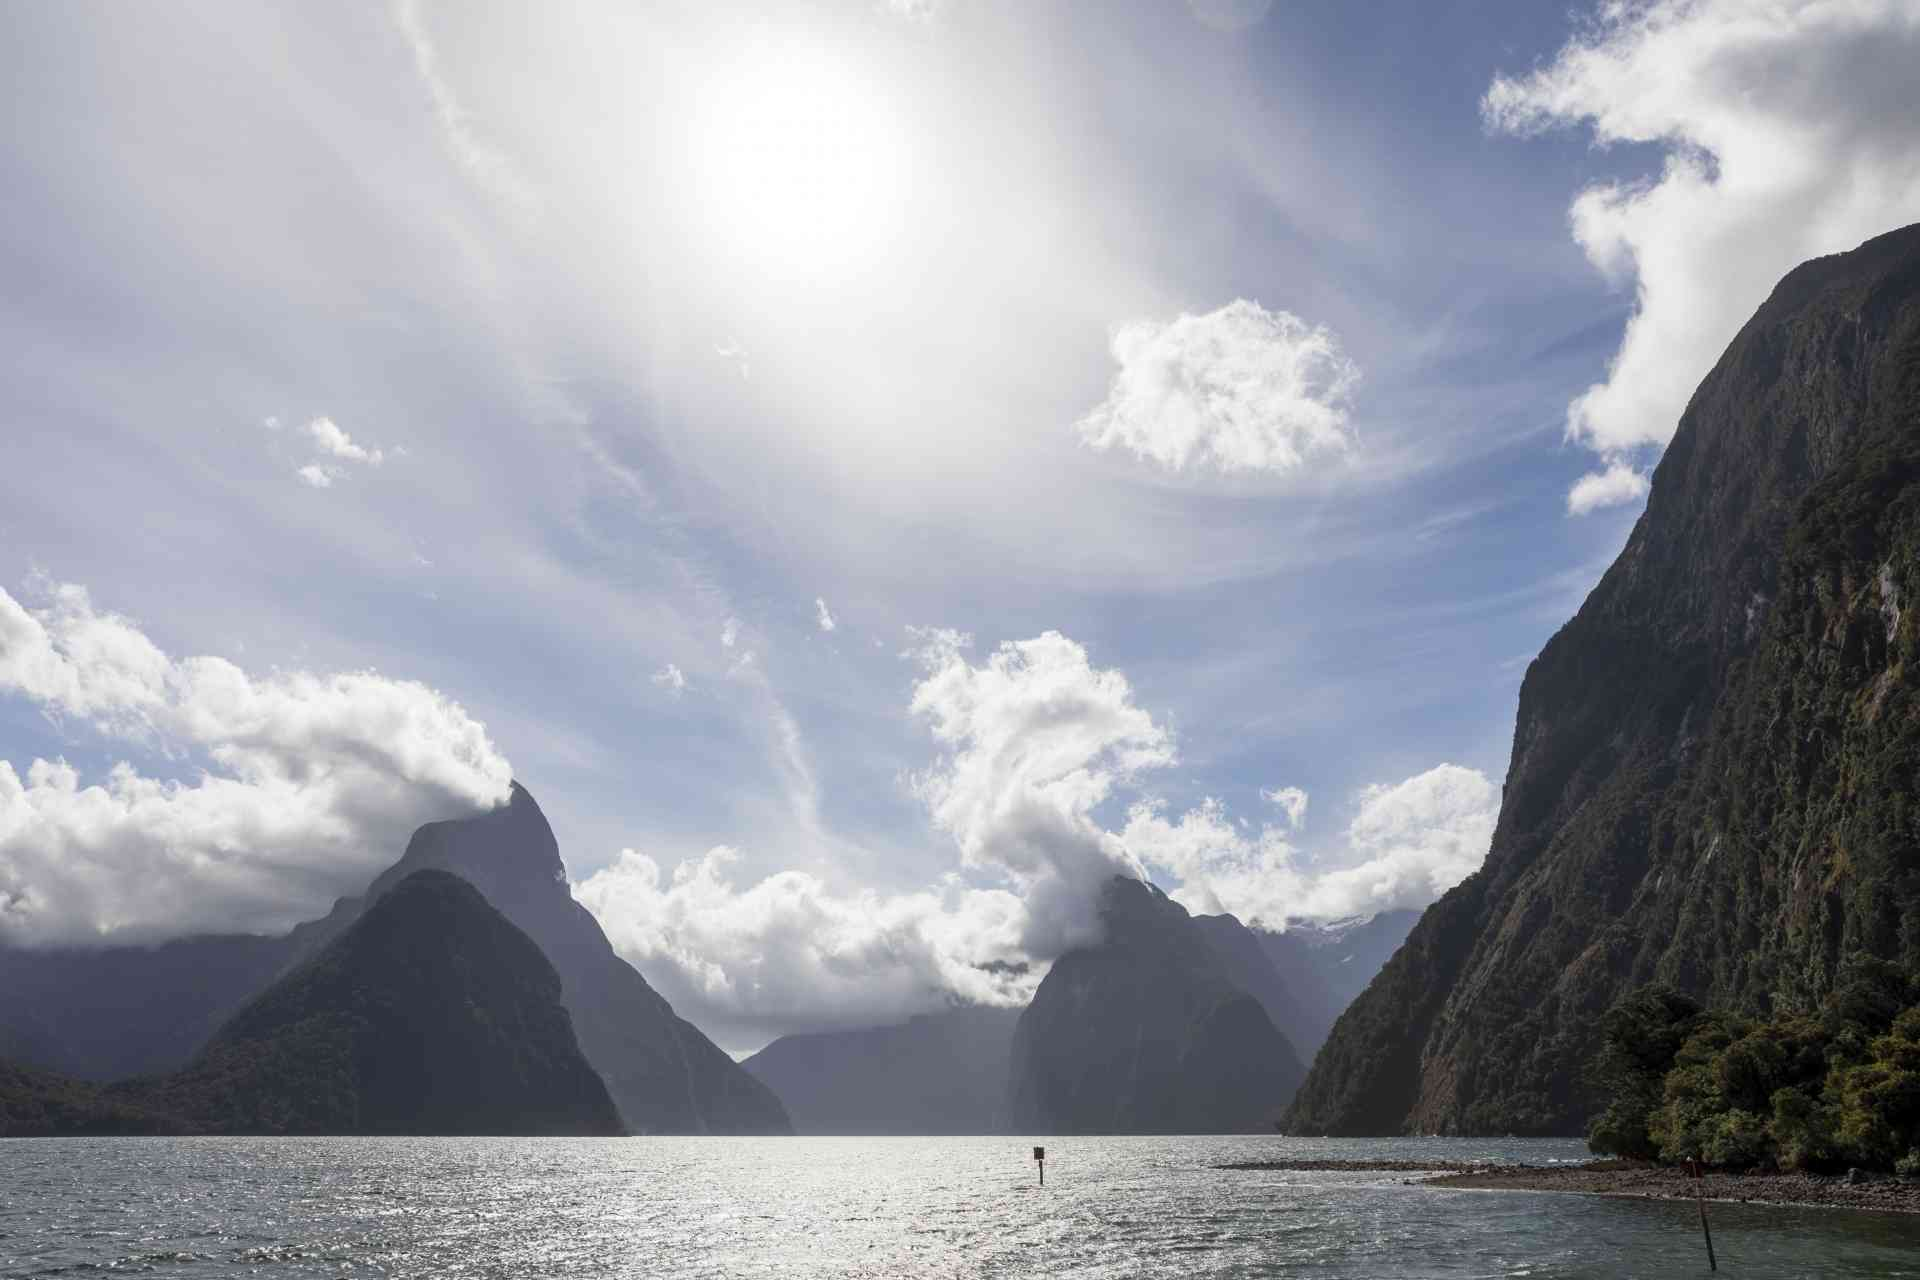 Milford Sound, New Zealand by Graeme Murray